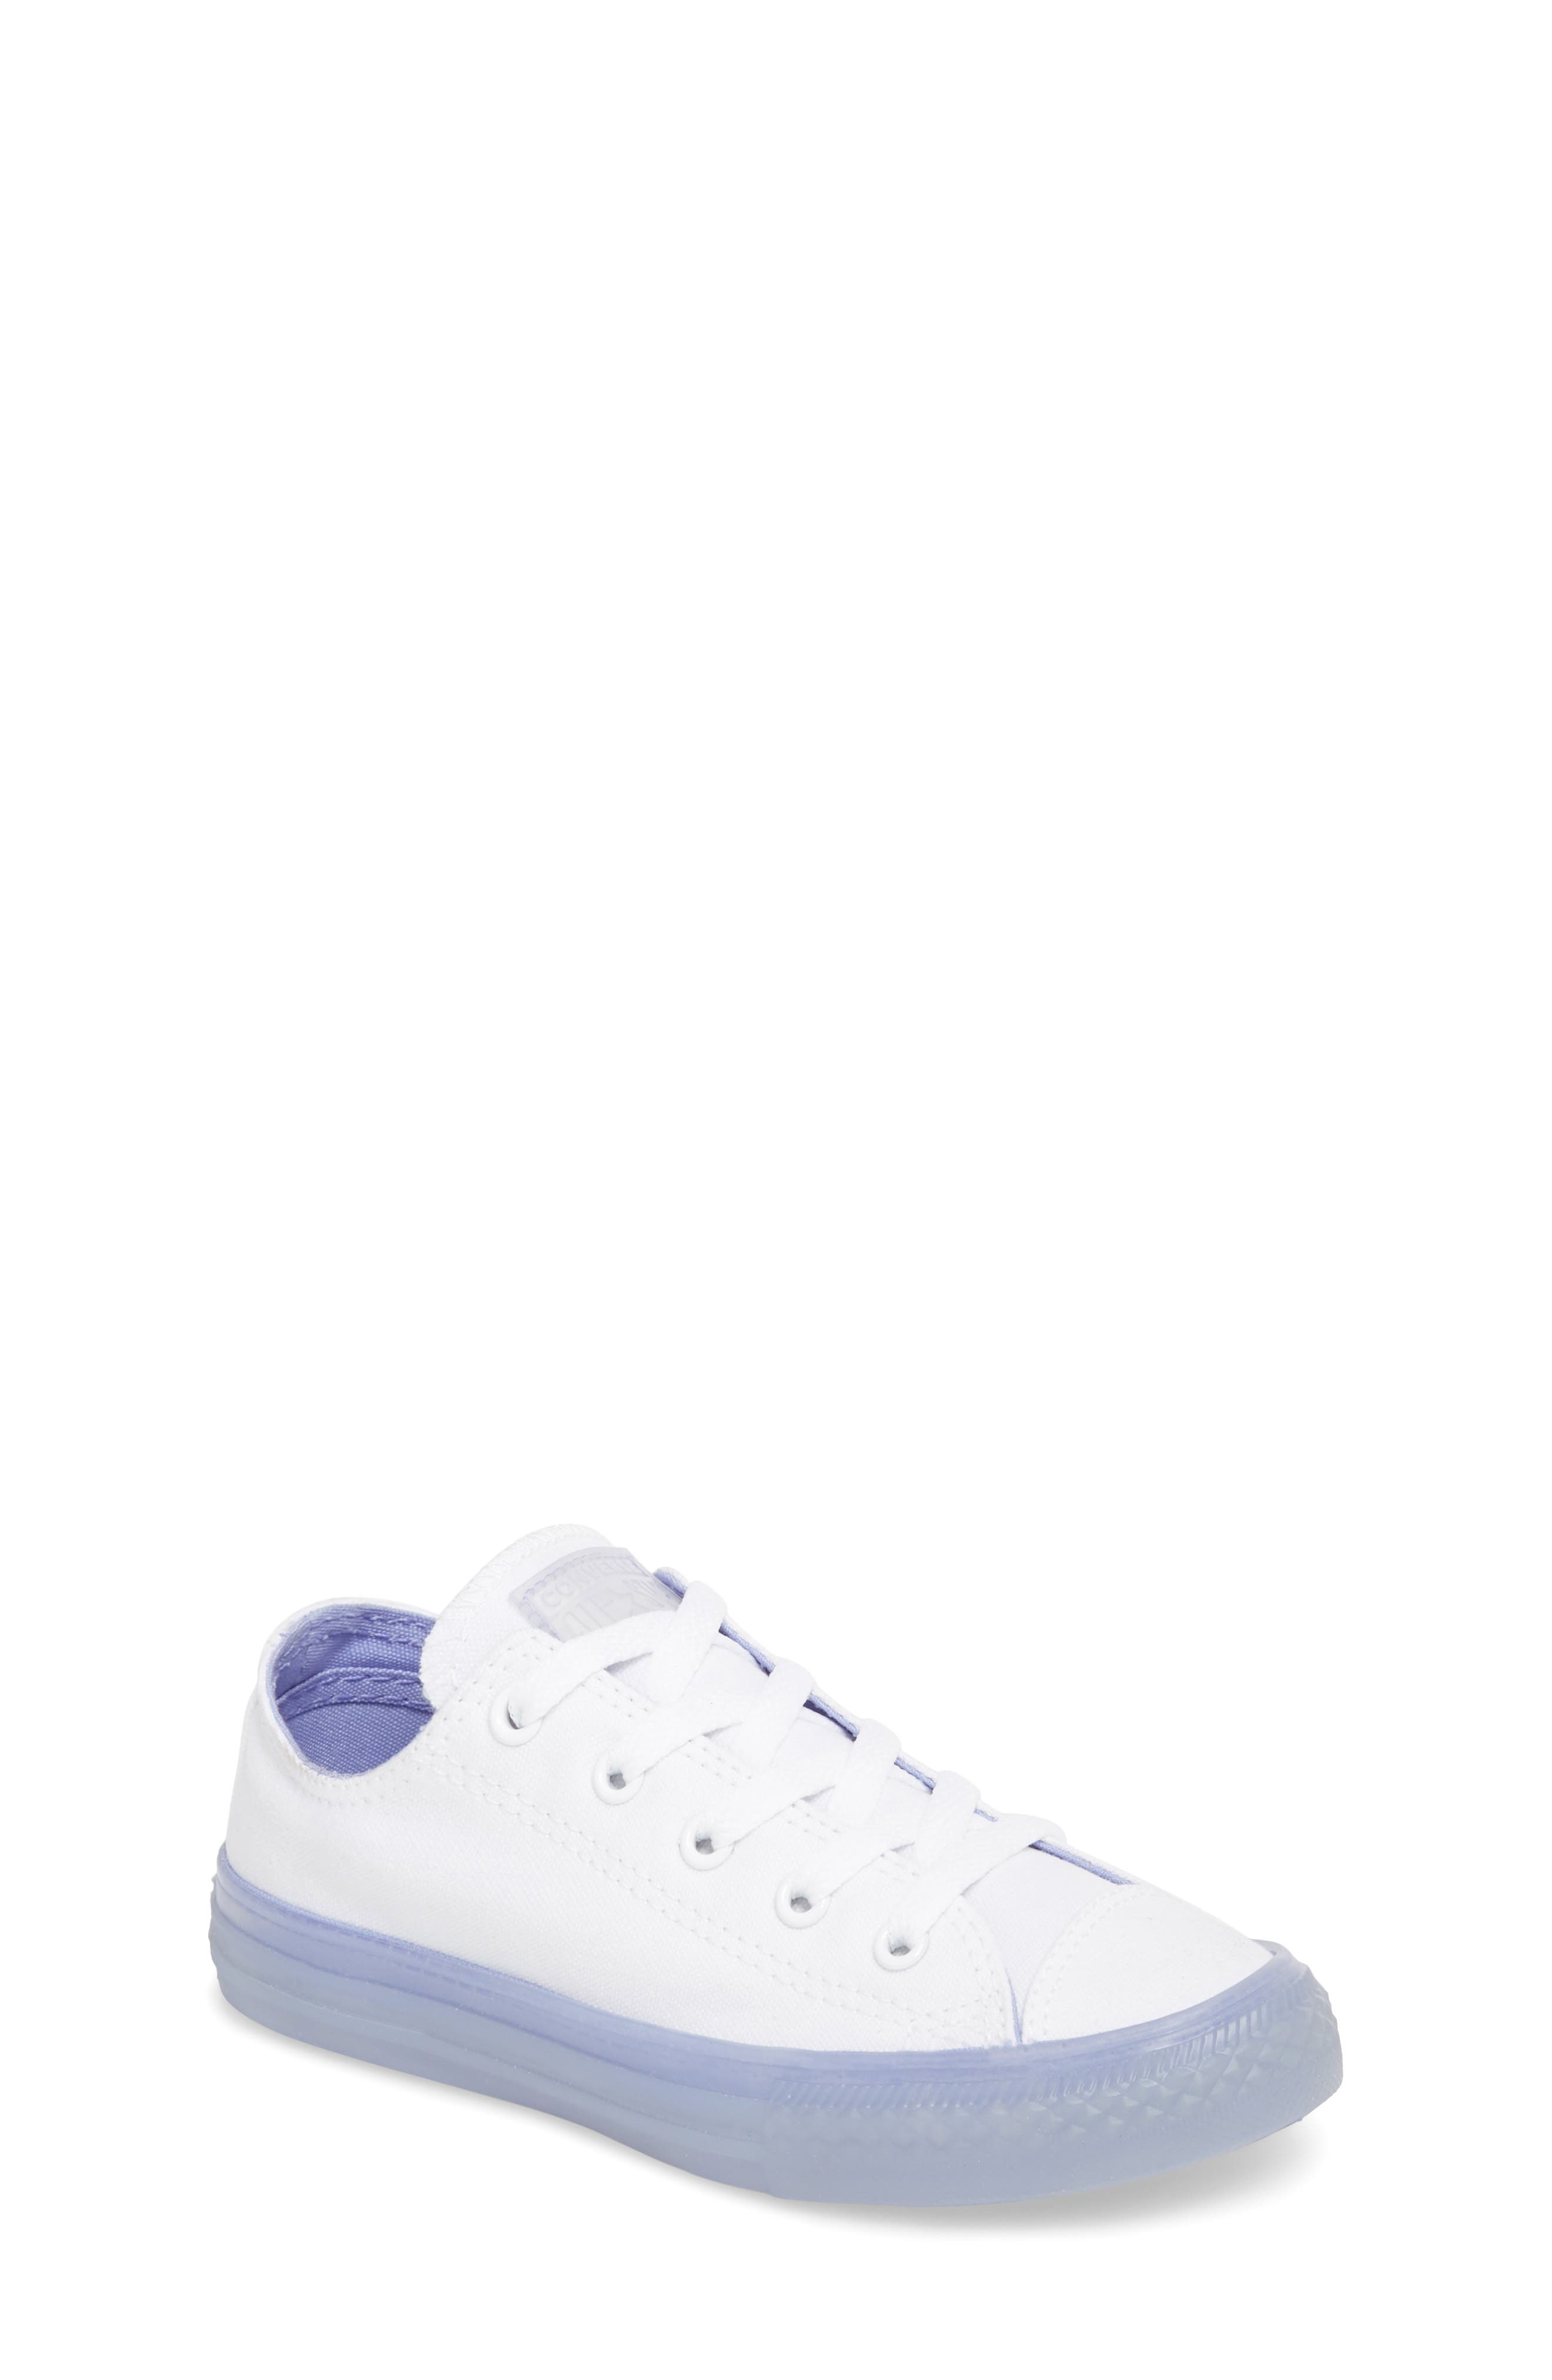 Chuck Taylor<sup>®</sup> All Star<sup>®</sup> Jelly Low Top Sneaker,                             Main thumbnail 1, color,                             Purple